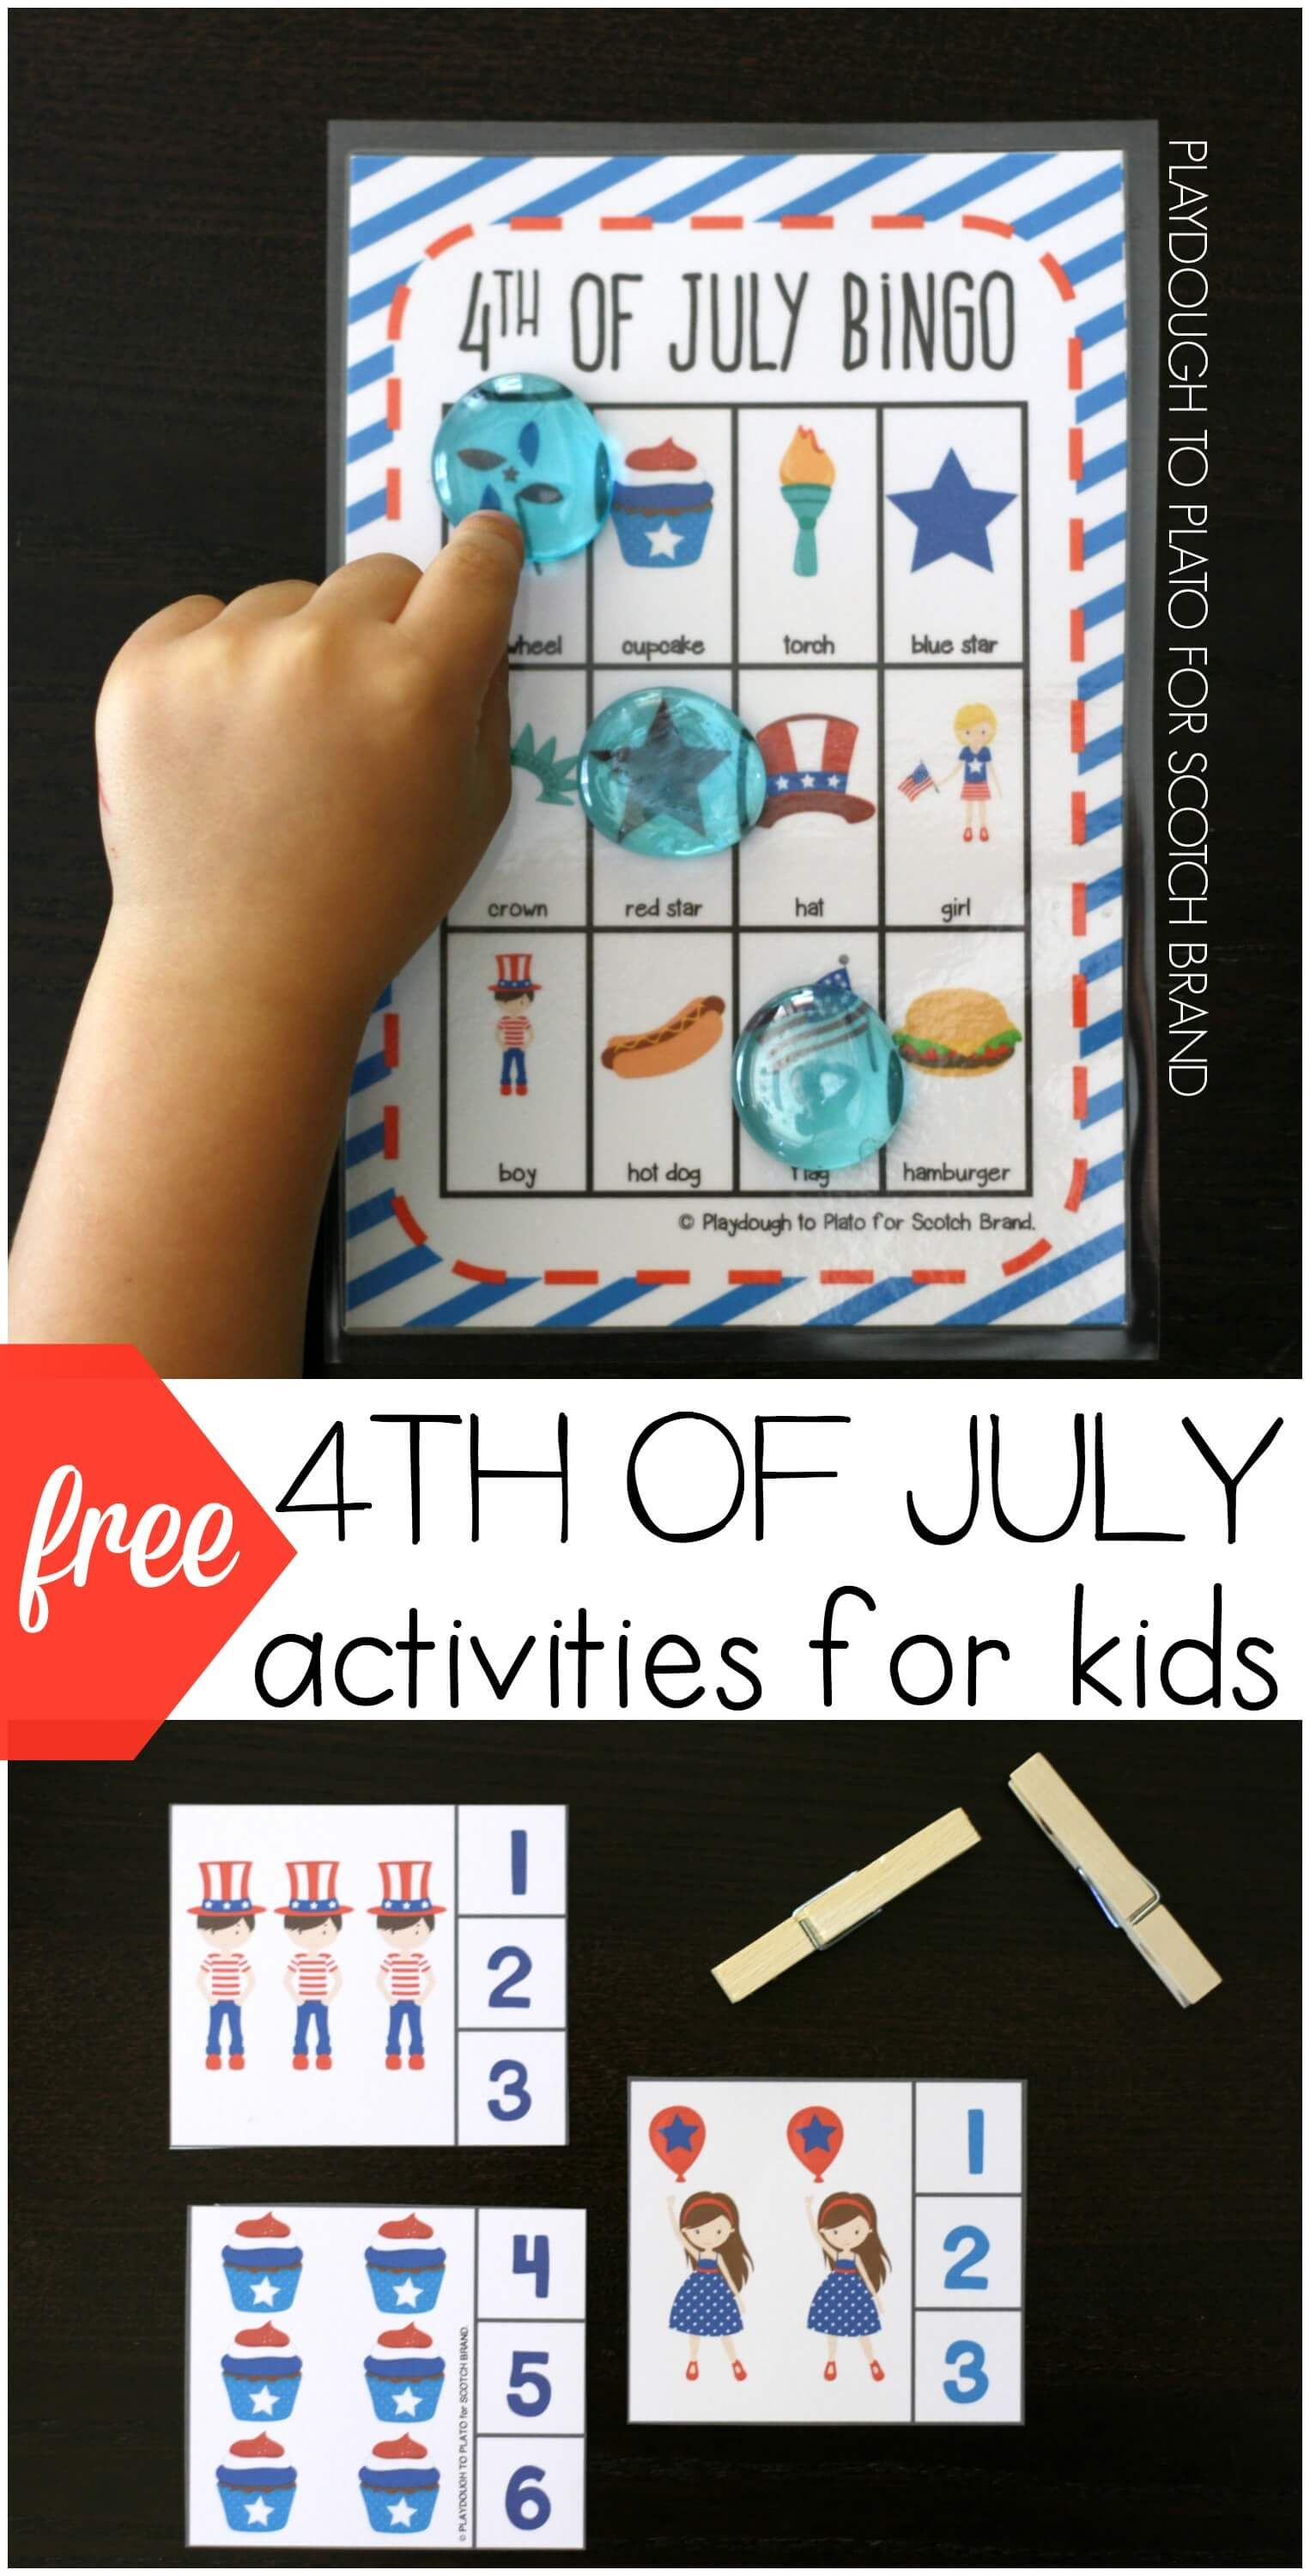 Free 4th Of July Activities For Kids Playdough To Plato Printables Free Kids Activities For Kids Independence Day Theme [ 3000 x 1526 Pixel ]